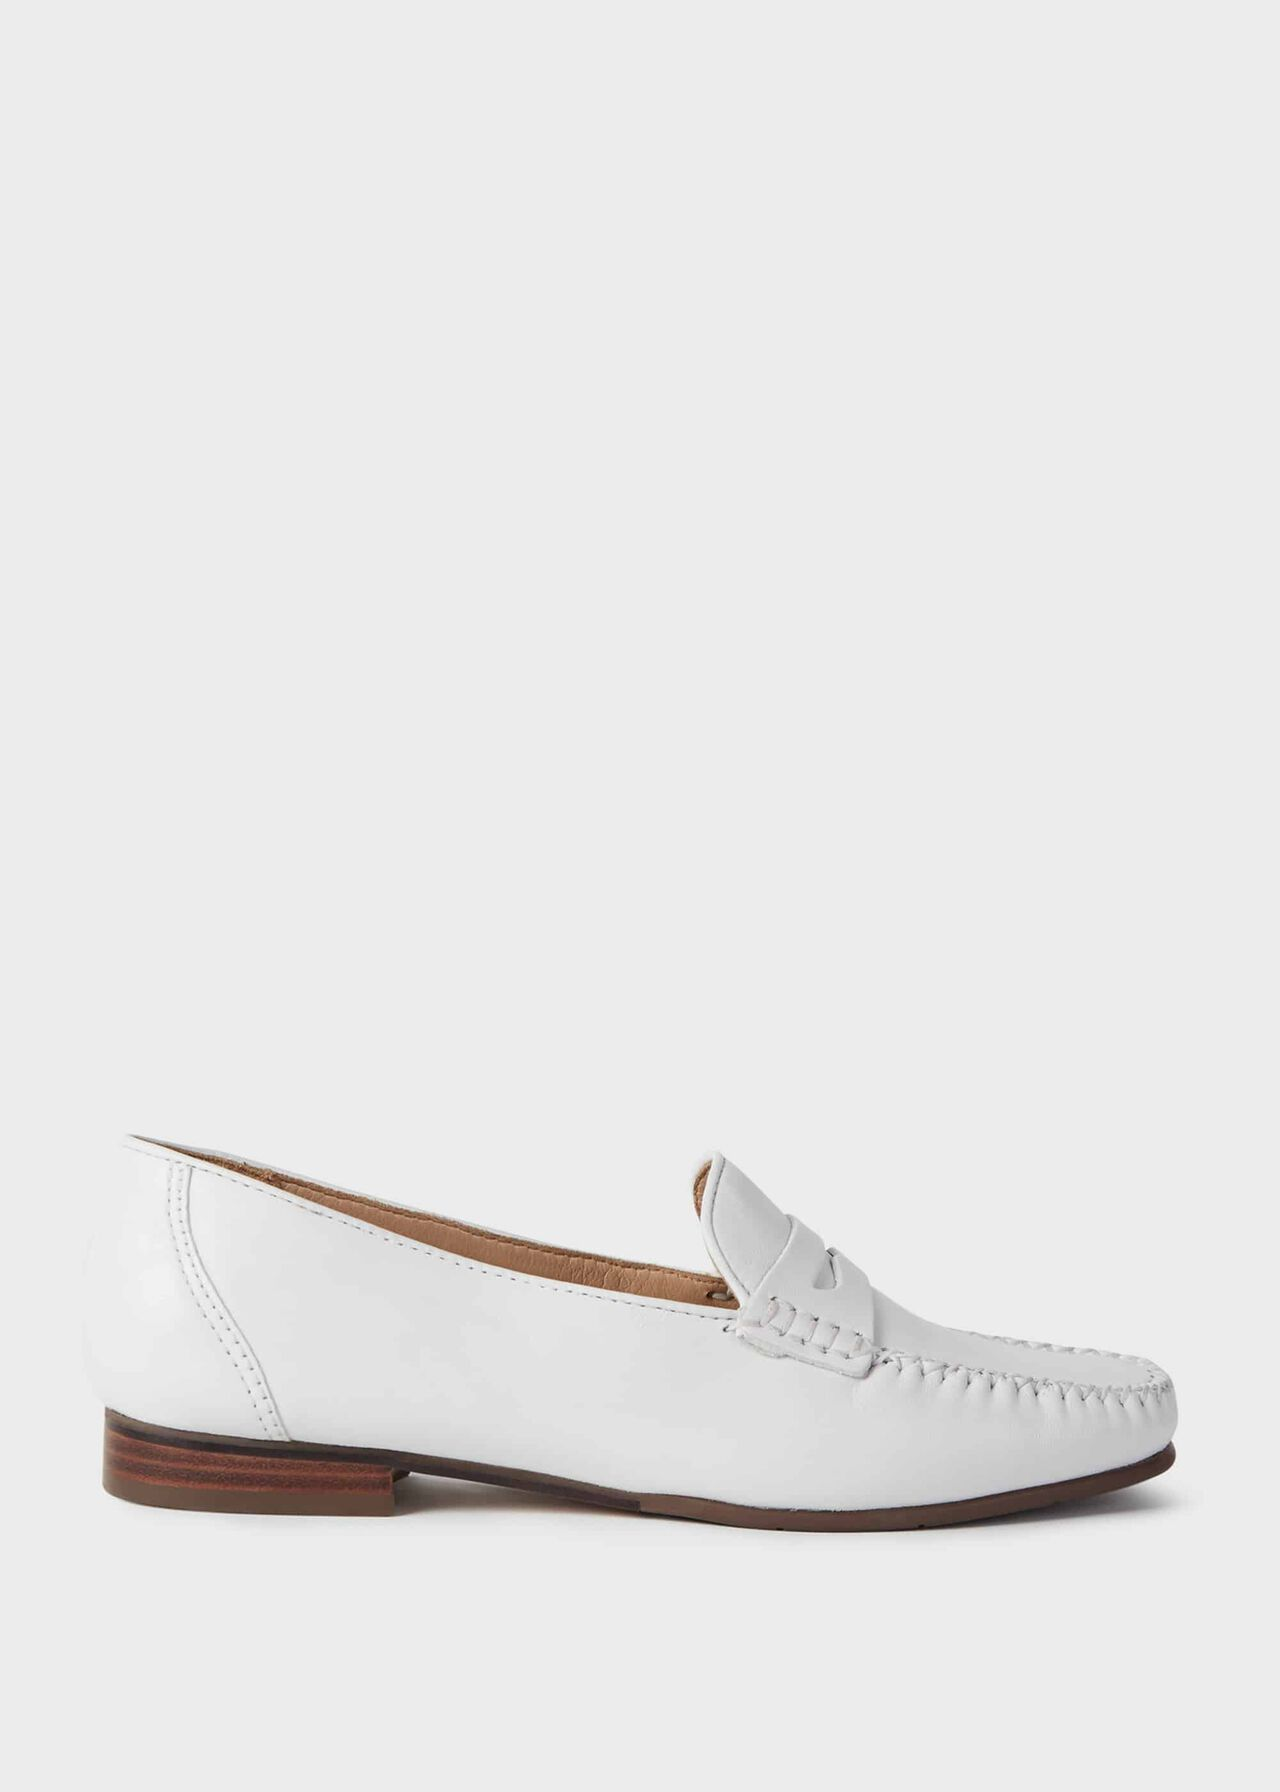 Holly Leather Moccasins, White, hi-res